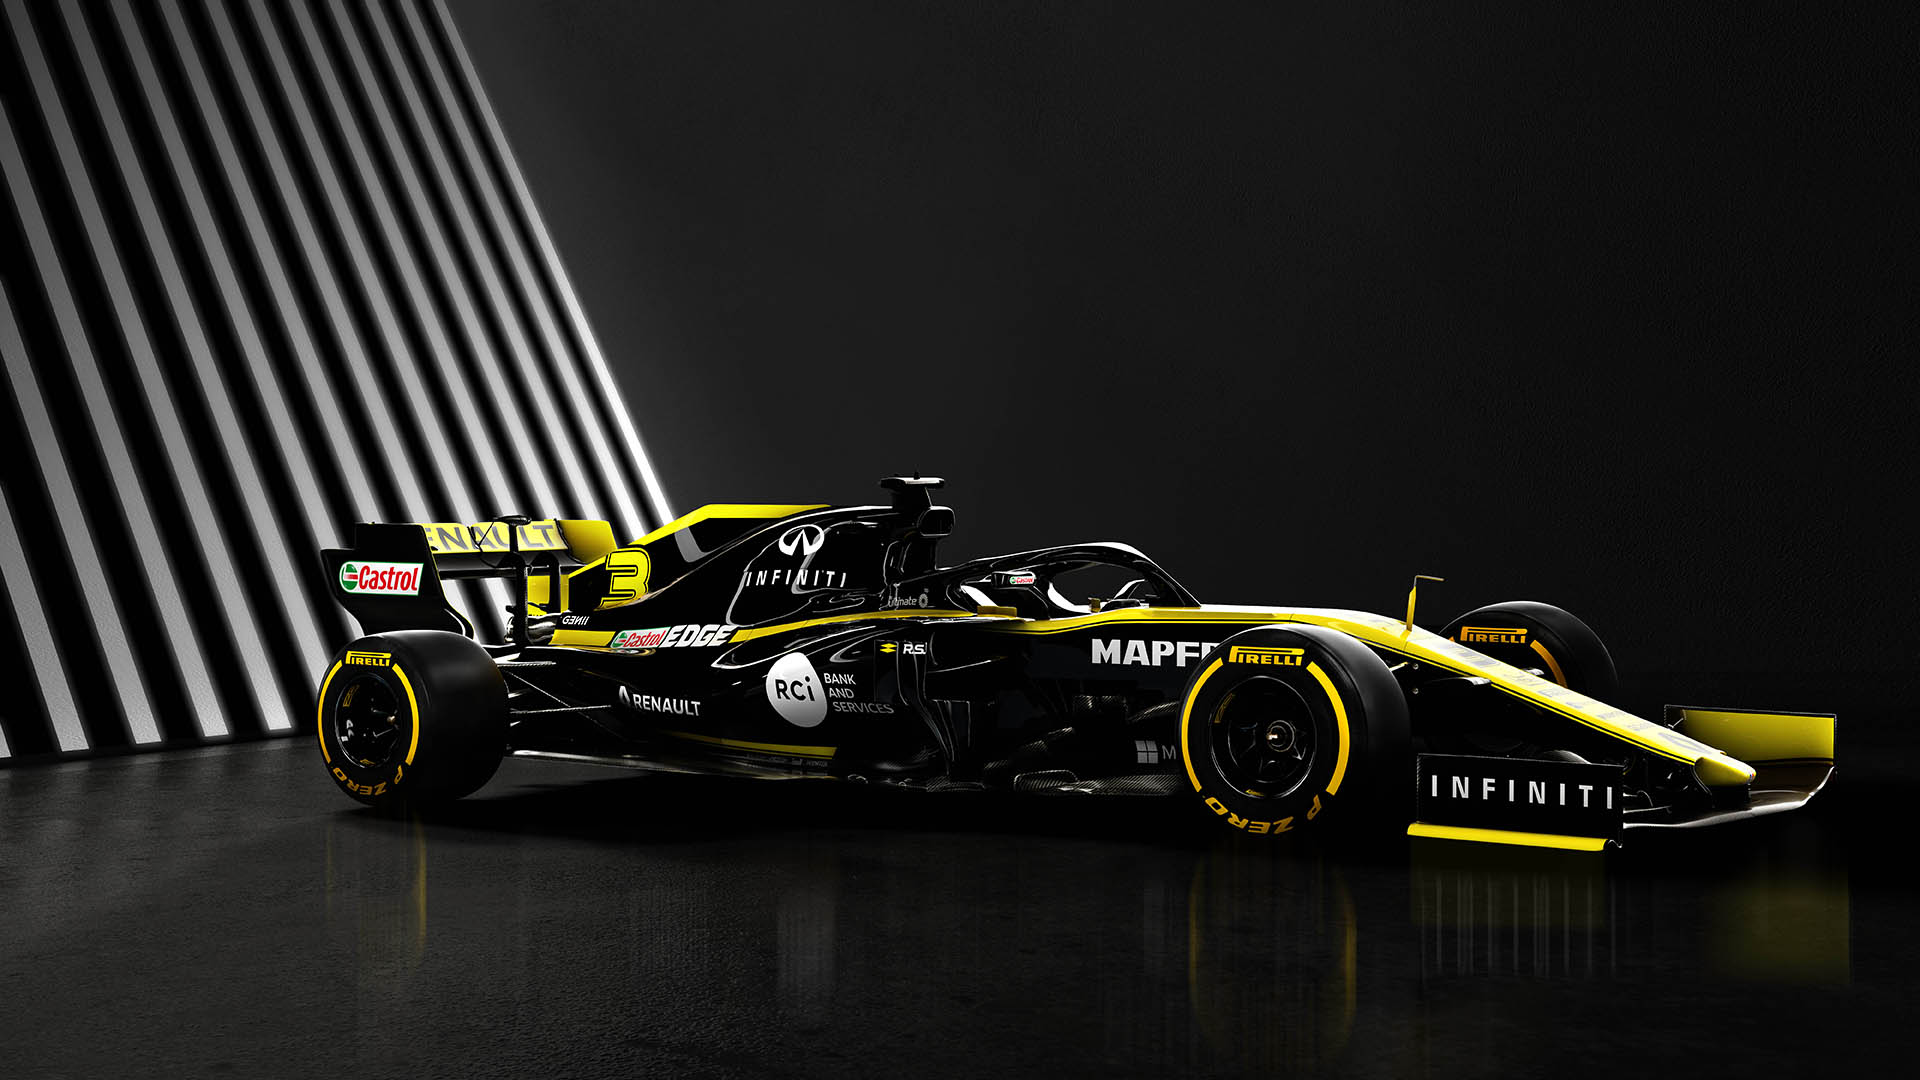 f1 renault sport f1 pulls cover on their r video. Black Bedroom Furniture Sets. Home Design Ideas